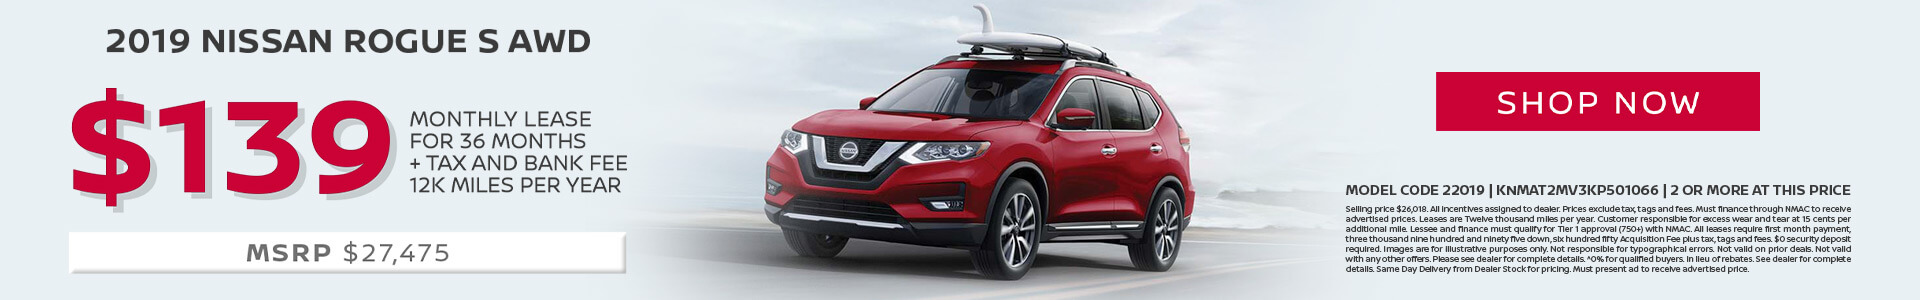 Nissan Rogue $139 Lease